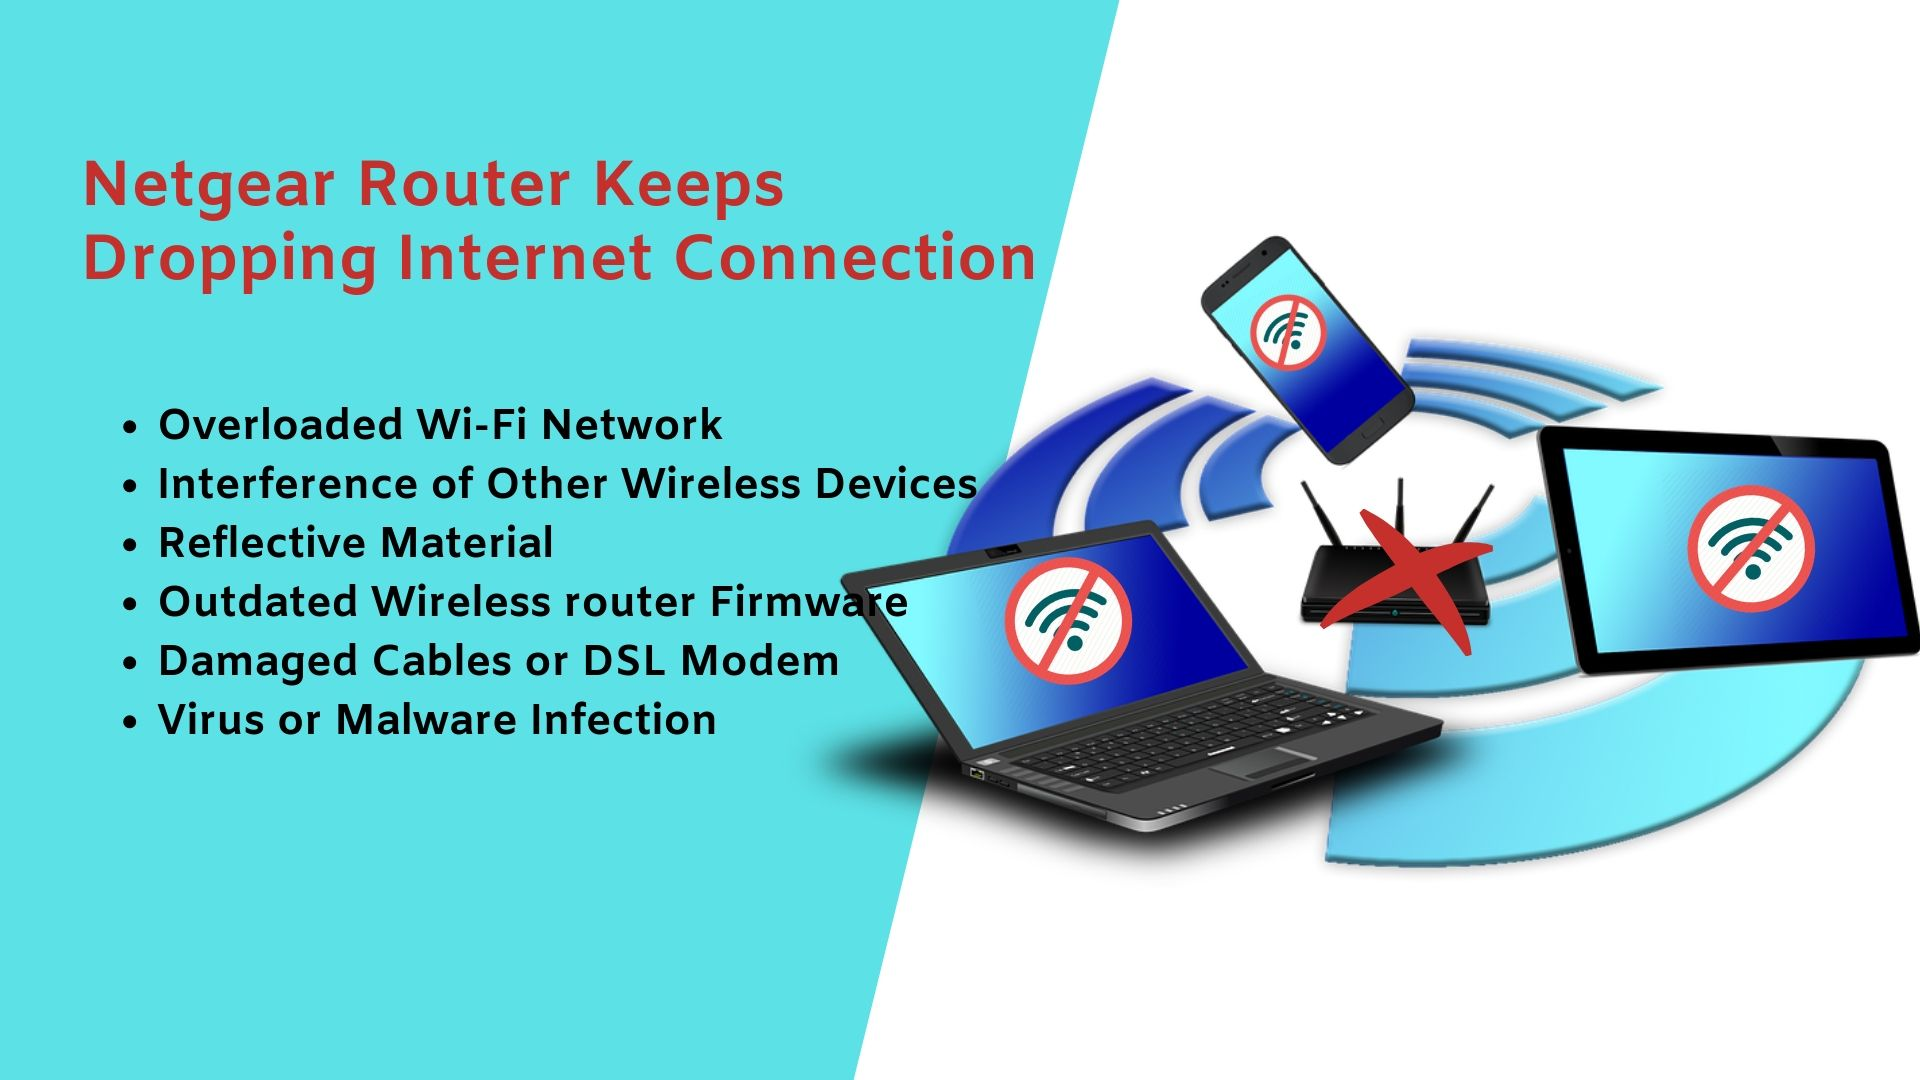 Netgear Router Drops Wifi Connection - Issue Resolved